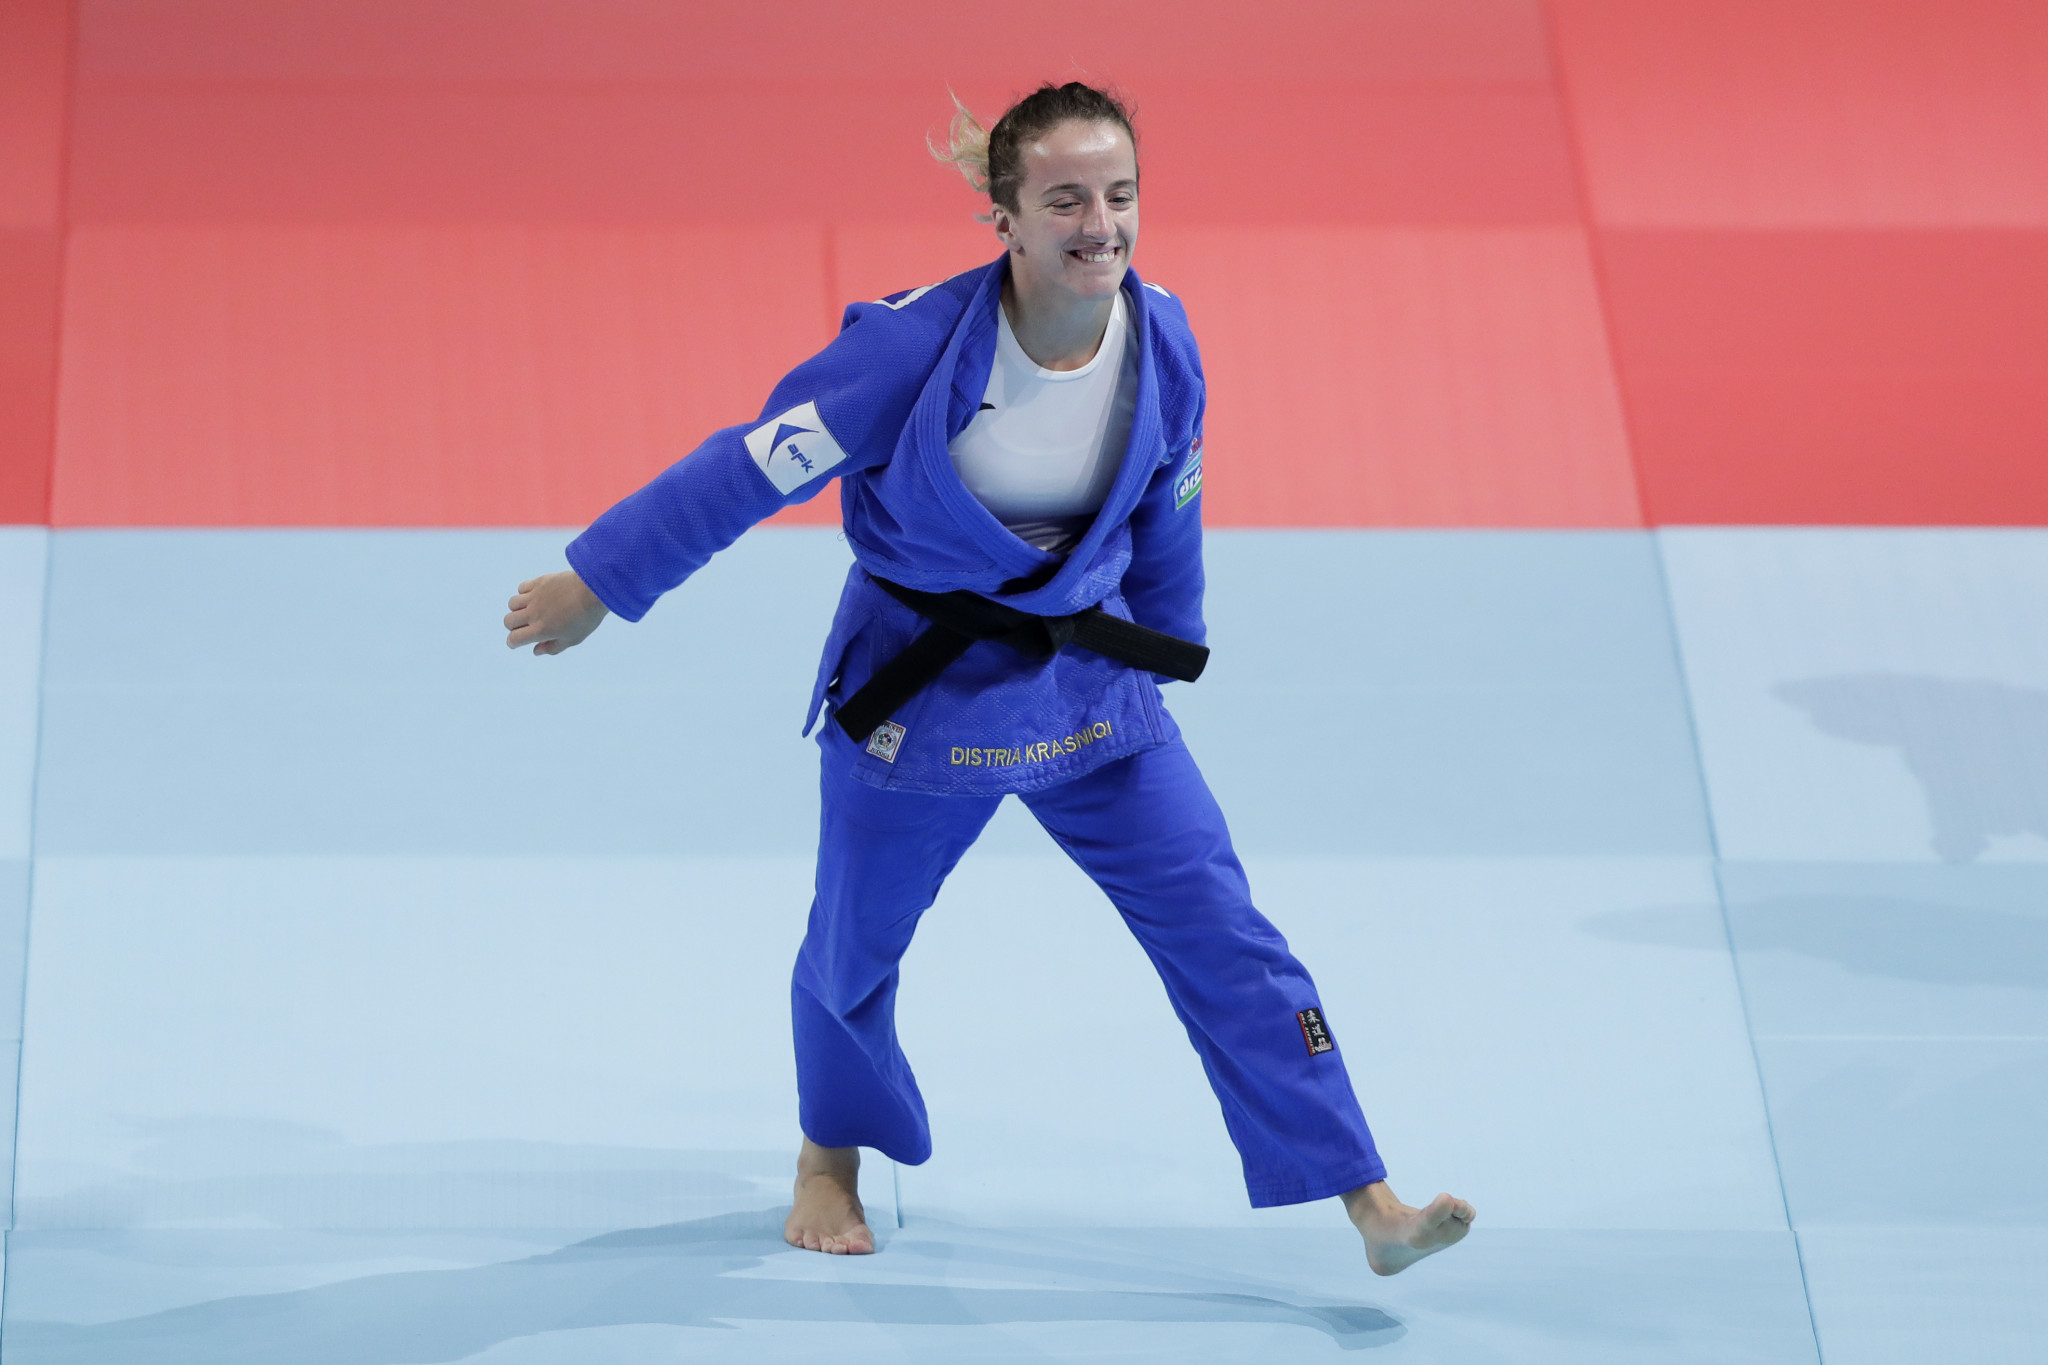 Distria Krasniqi is one of several Tokyo 2020 hopefuls for Kosovo ©Getty Images